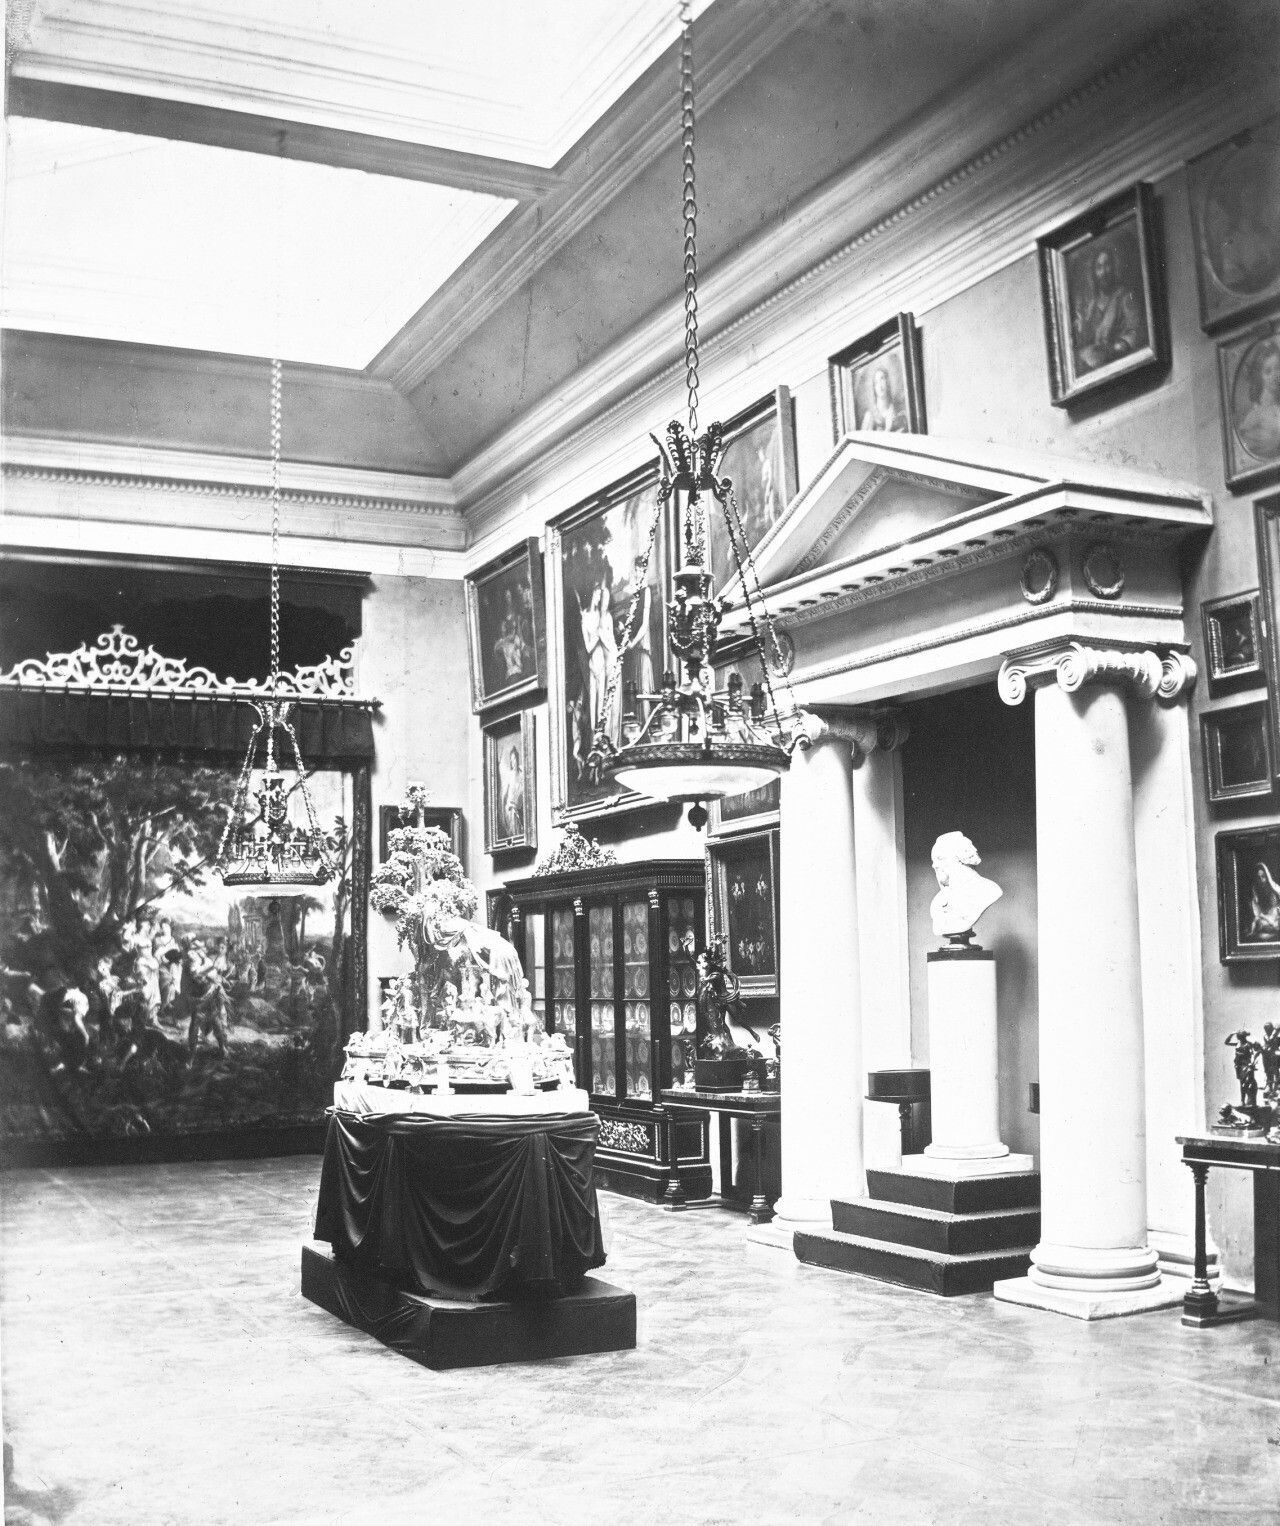 """One of the Art Gallery of the Yusupov Moika Palace in St Petersburg during Imperial Russian times. """"AL"""""""